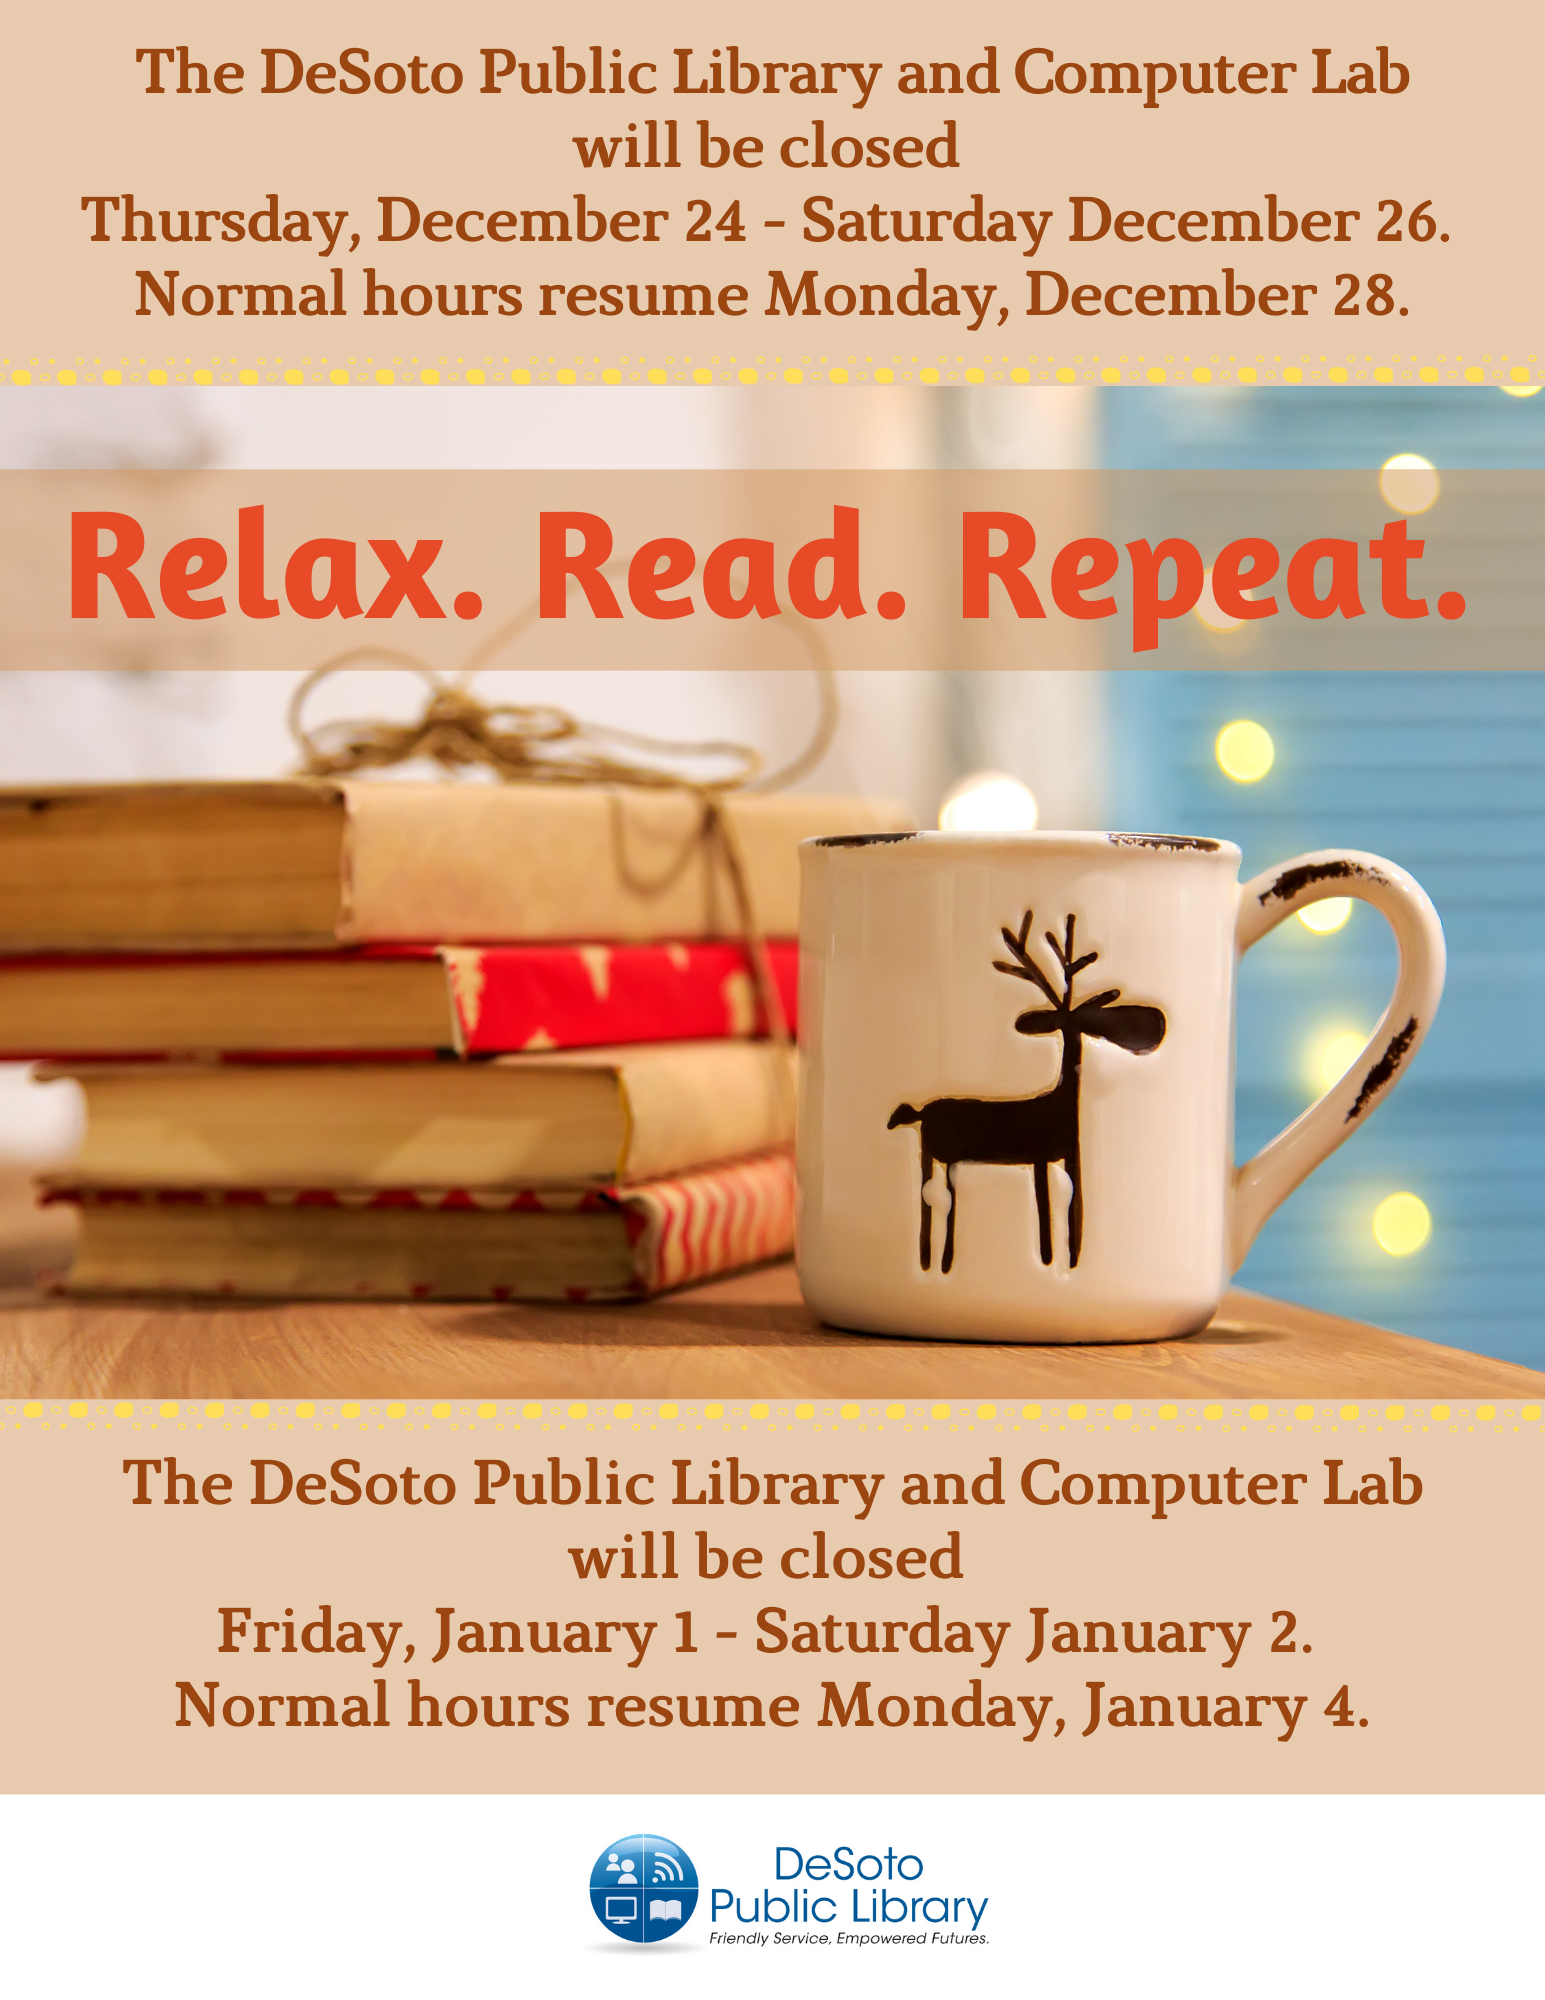 2020 DeSoto Public Library Winter Holiday Hours image